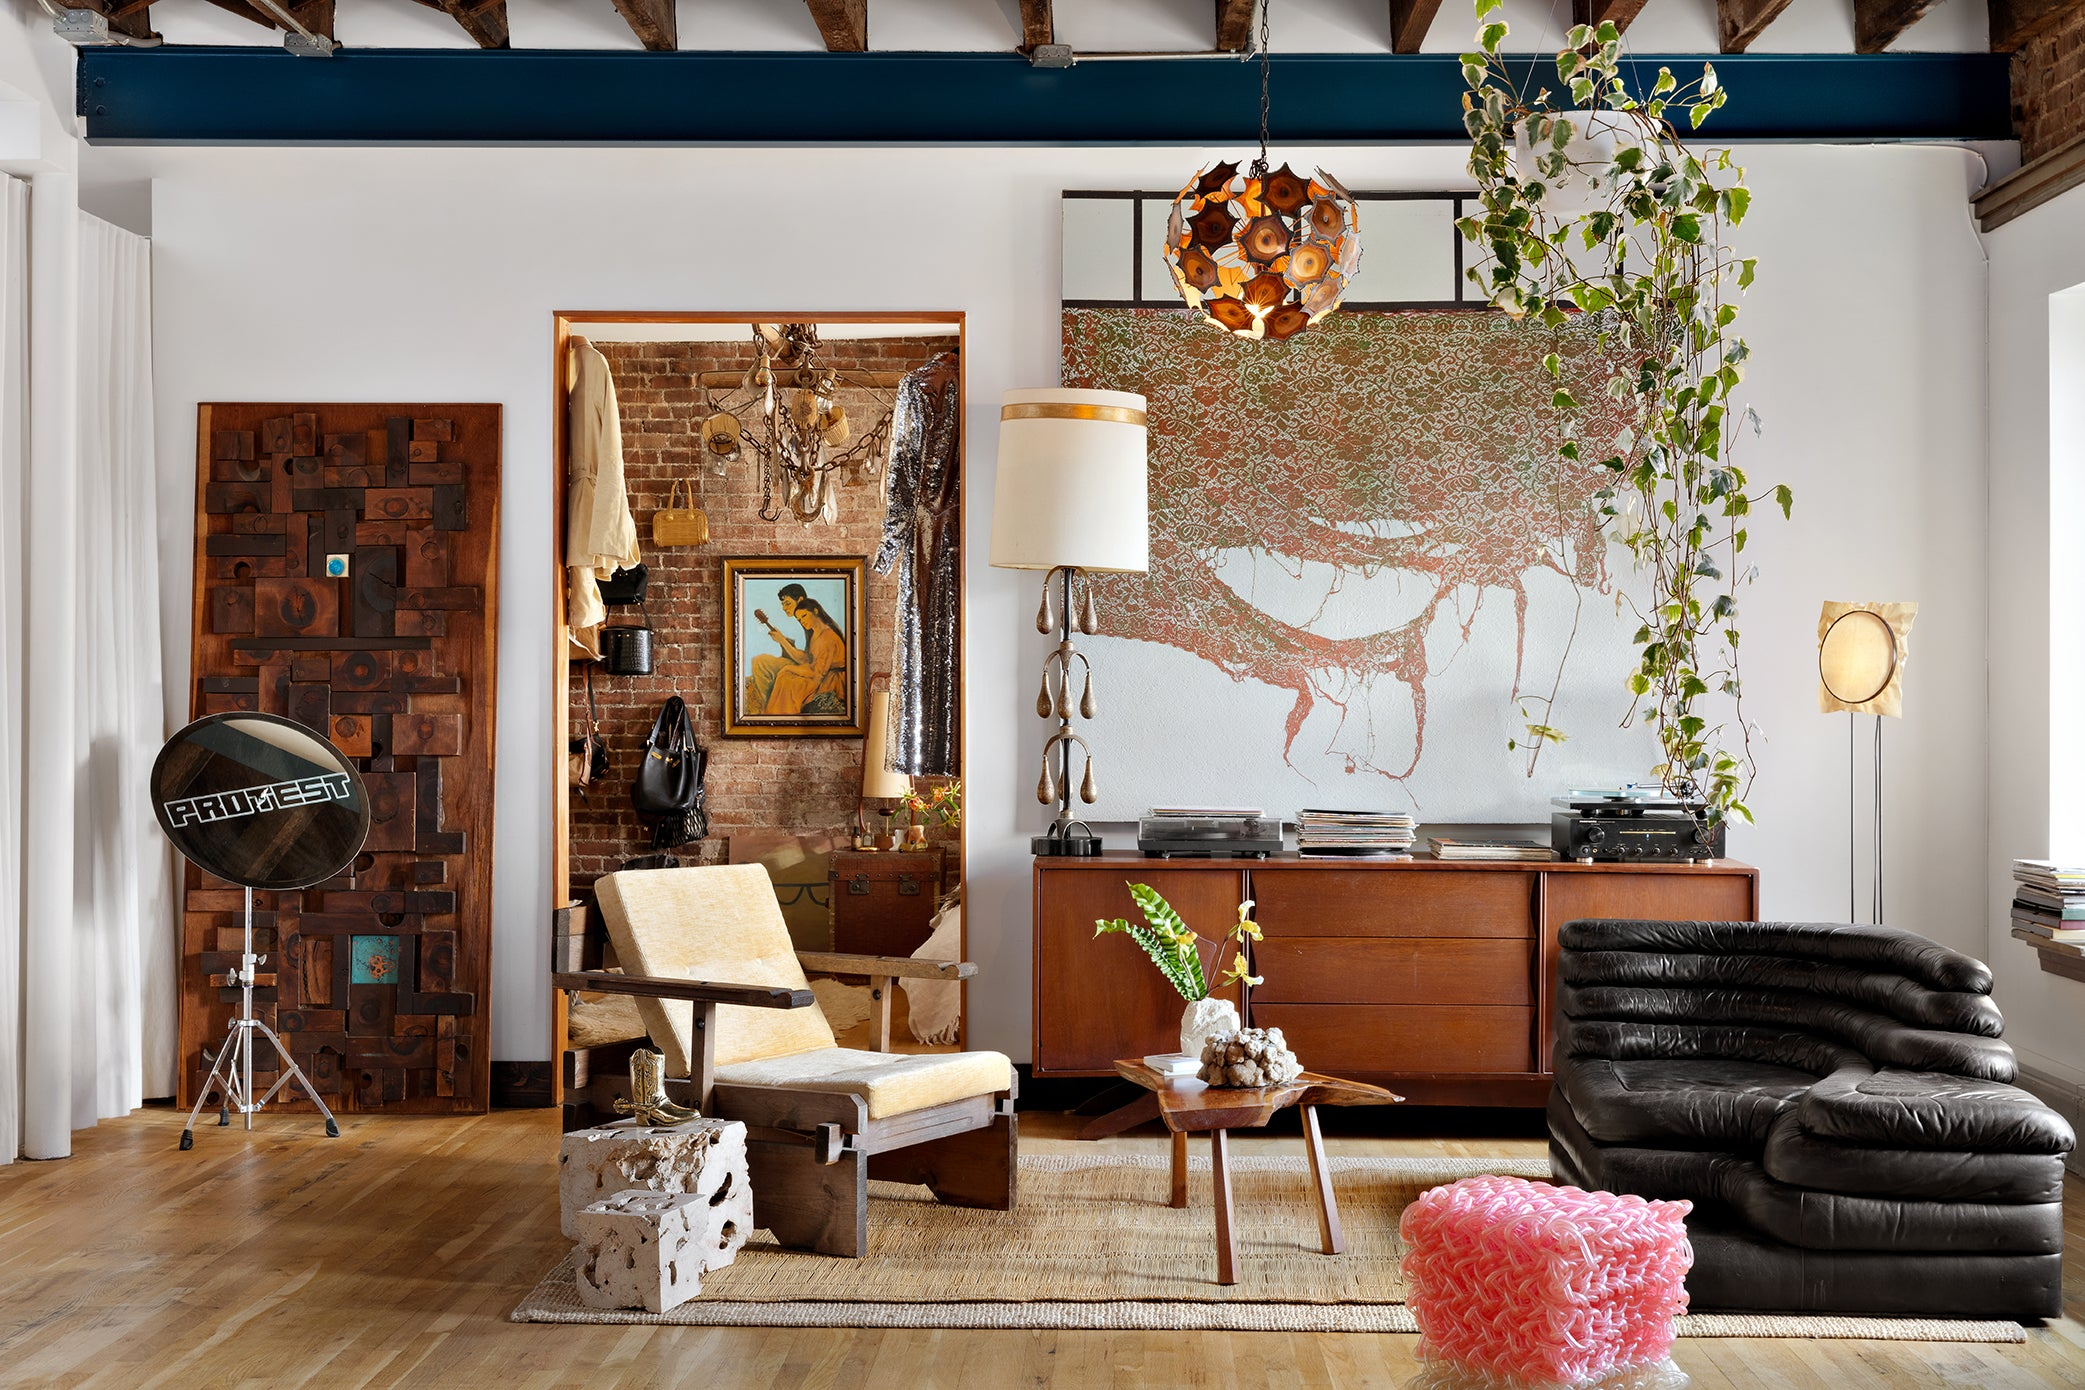 Sitting room by Evan Edwards in New York